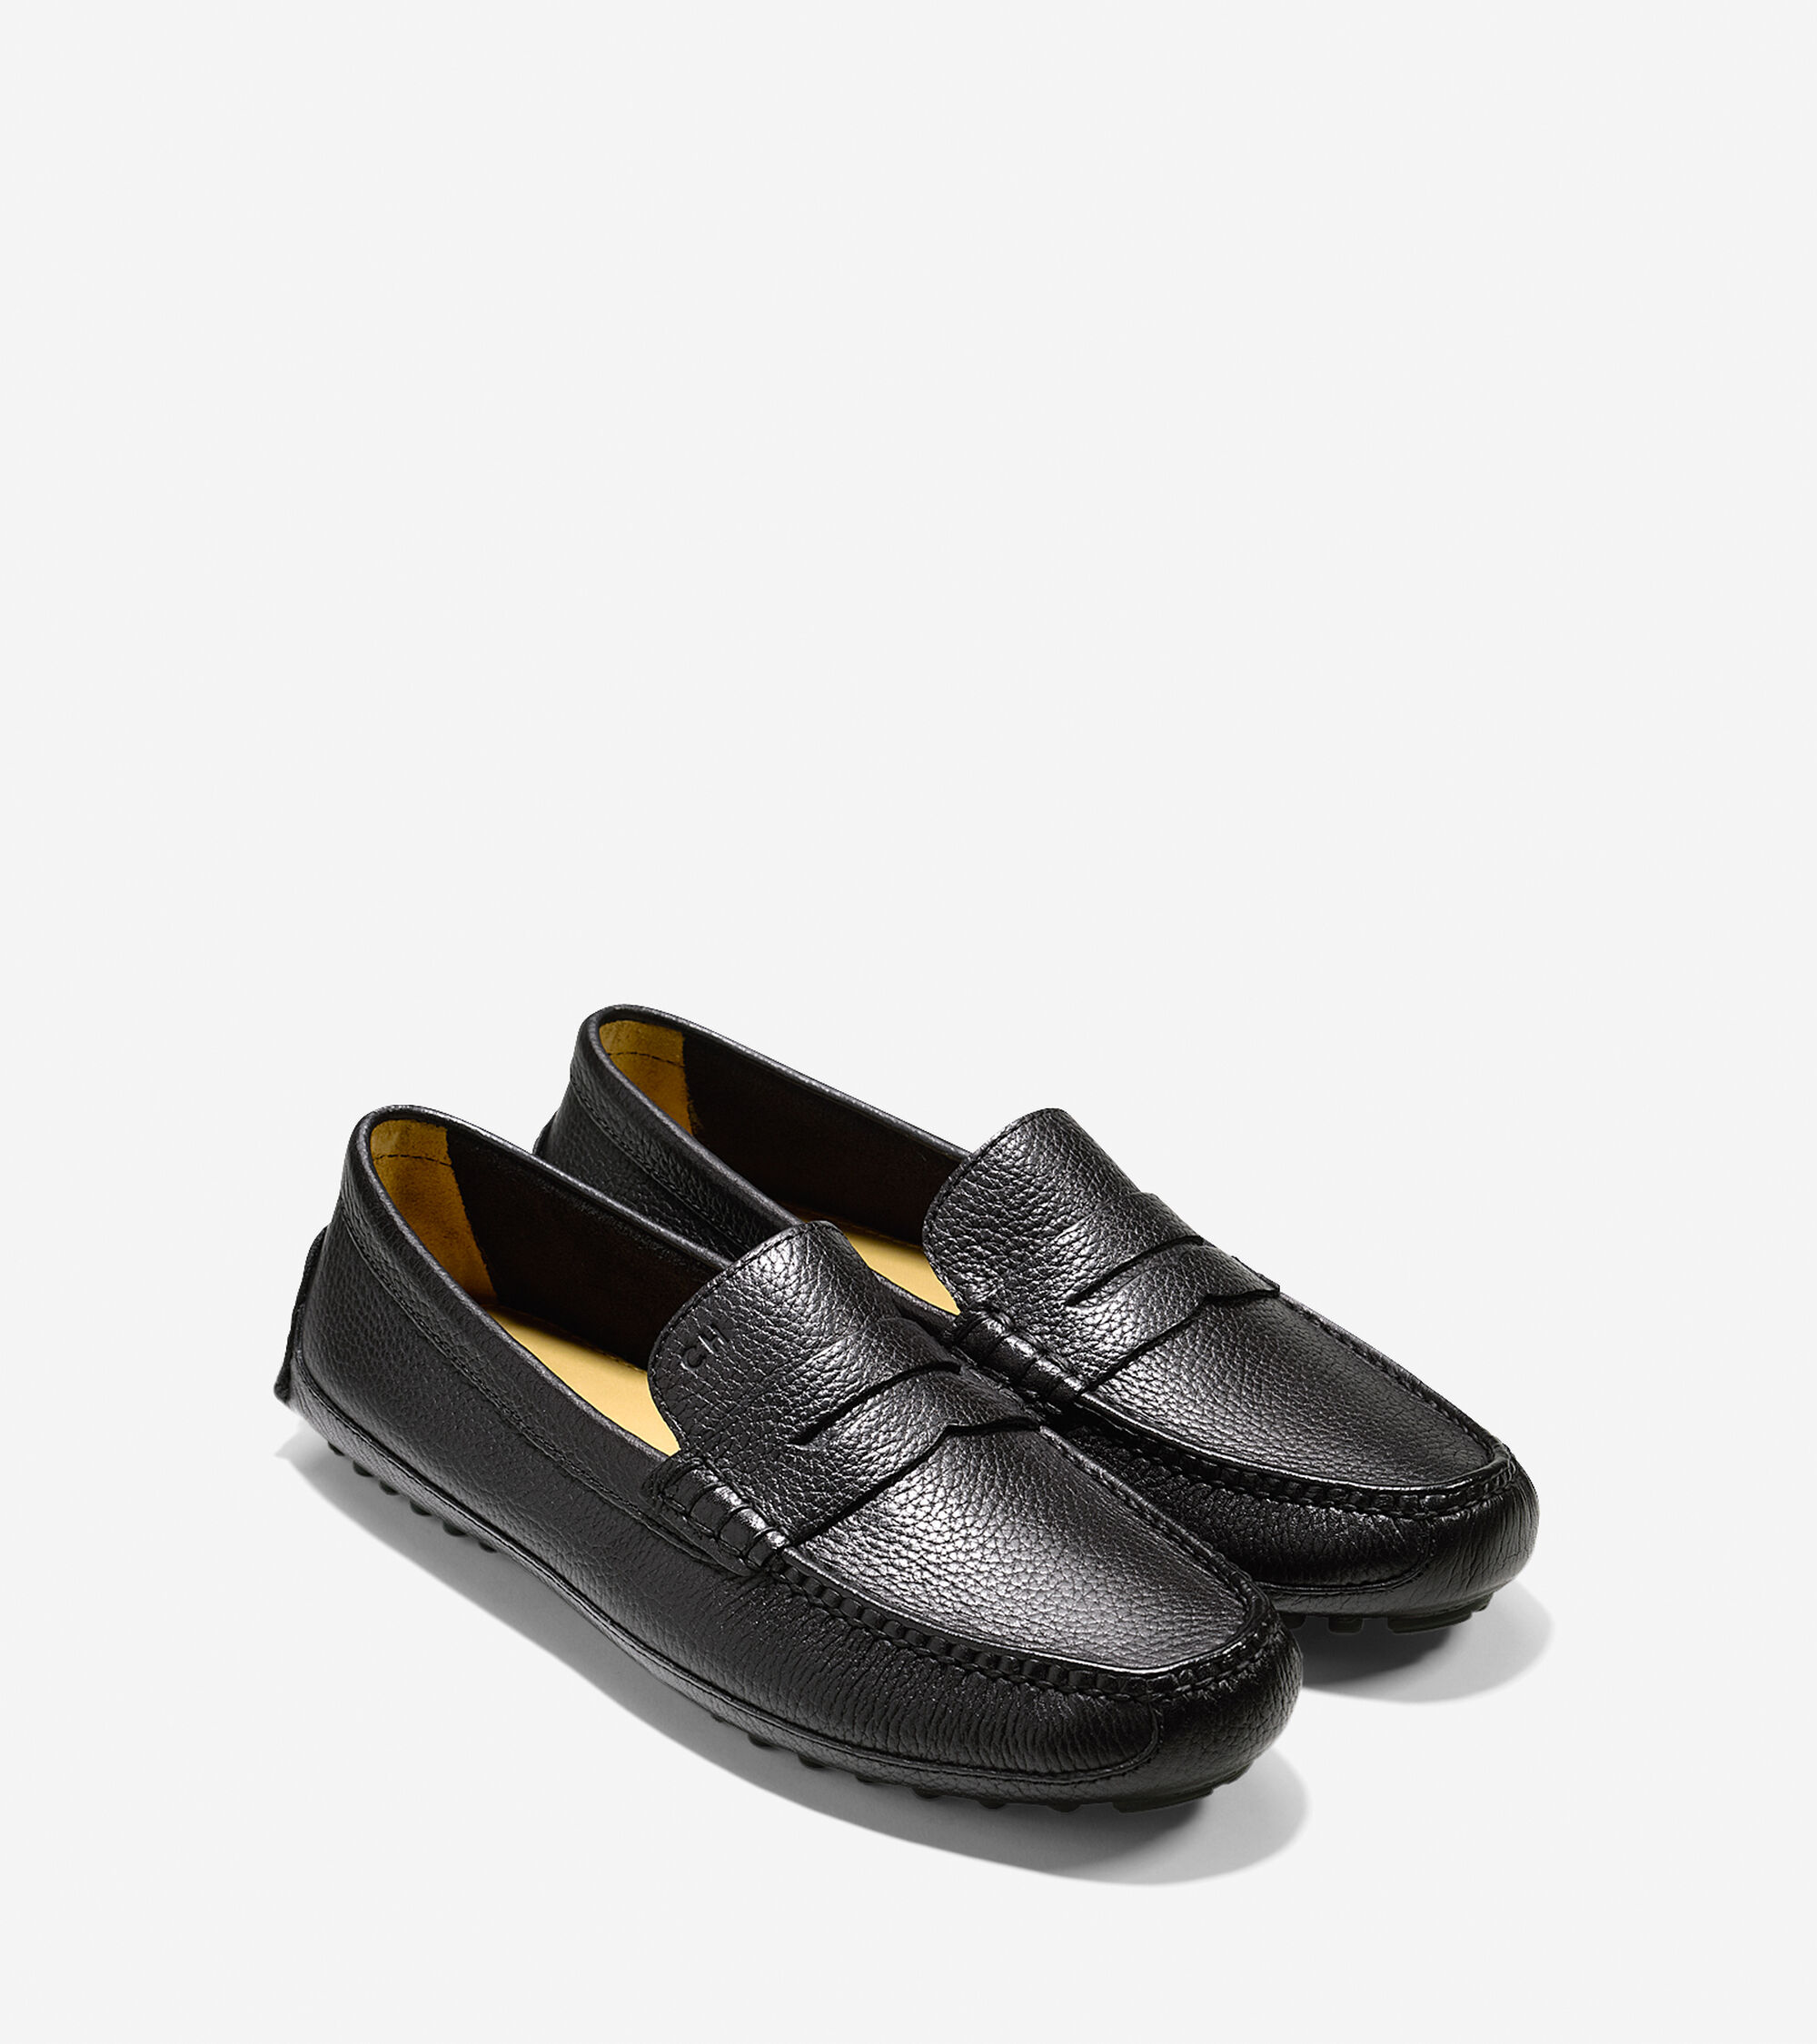 6e45bcd529c Grant Canoe Penny Loafers in Black   Mens Shoes